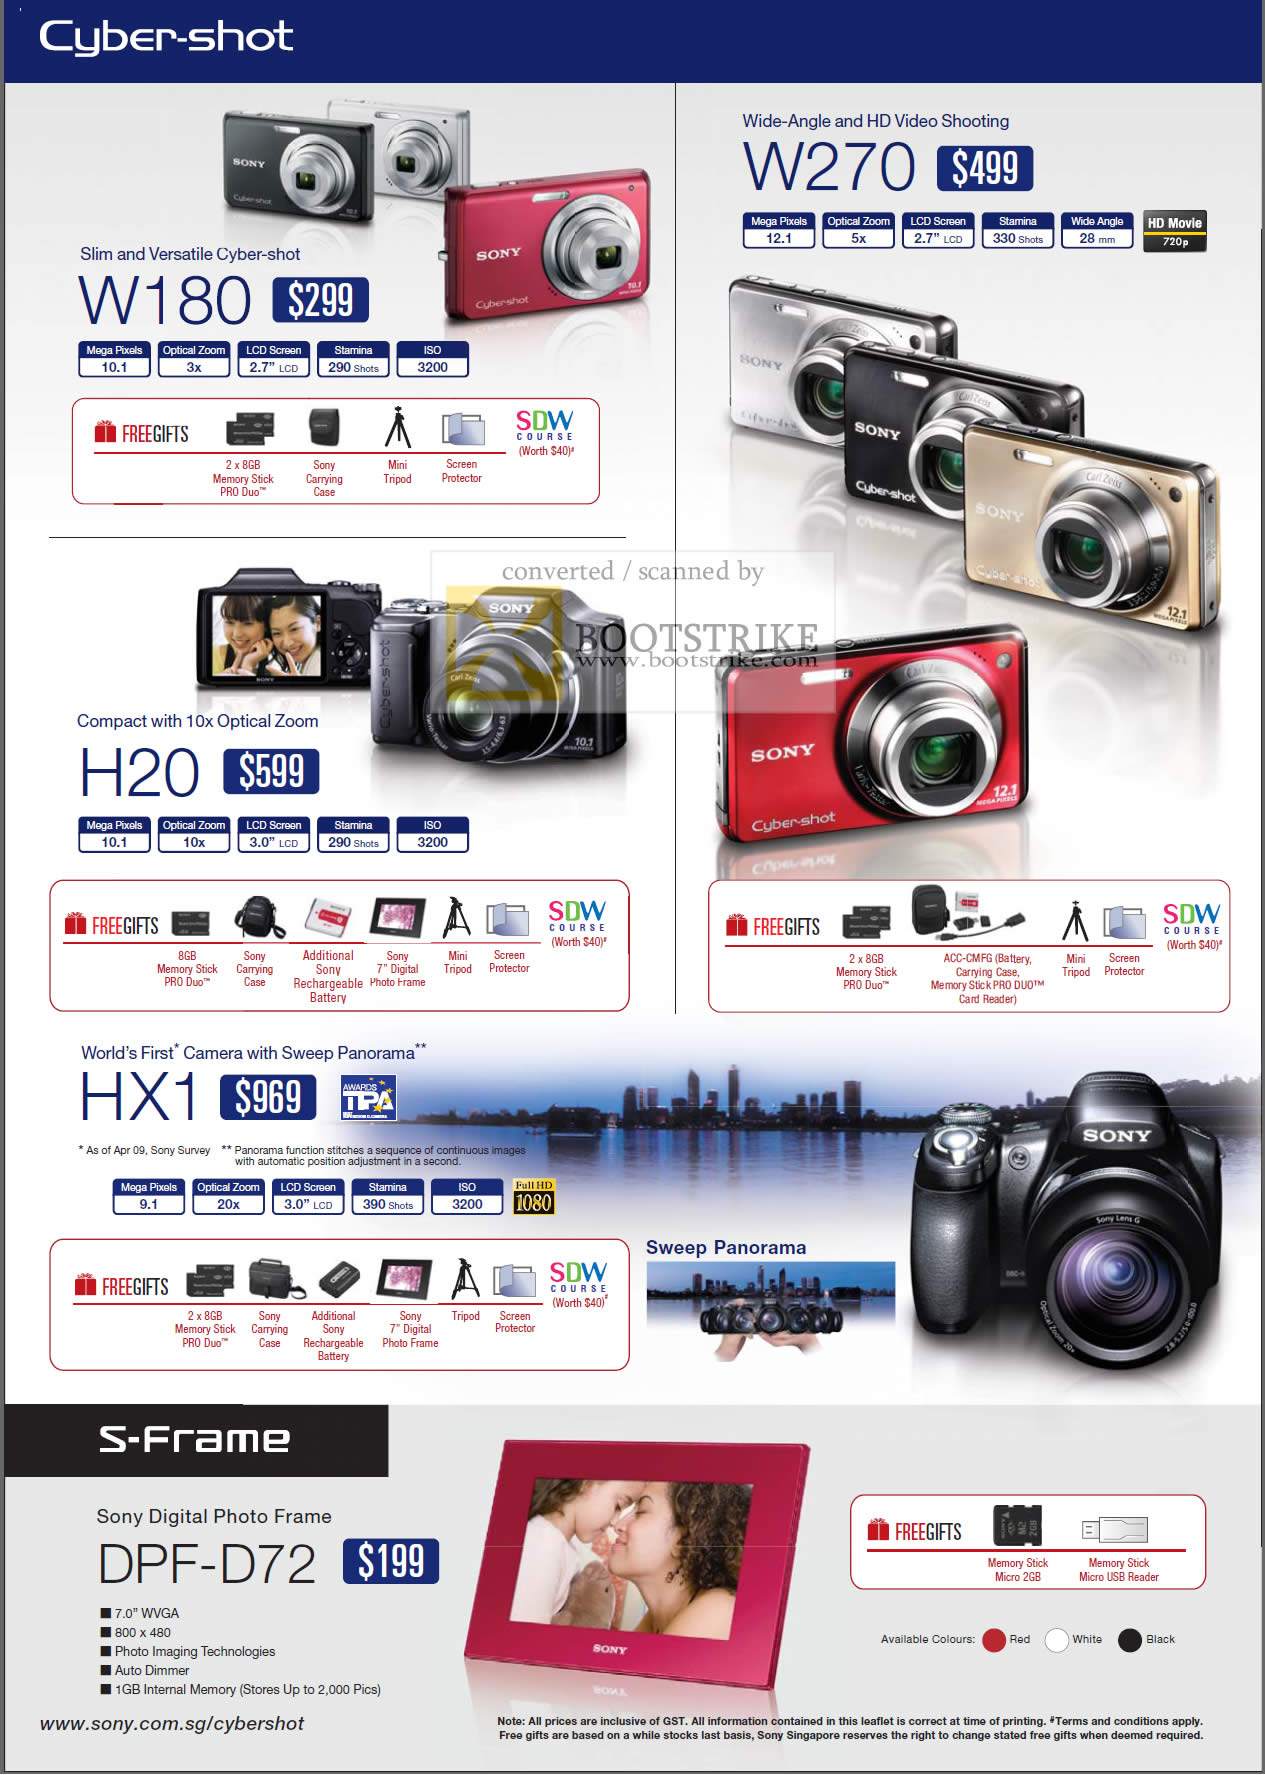 Comex 2009 price list image brochure of Sony Cybershot Digital Cameras W180 H20 HX1 W270 DPF D72 S-Frame Digital Photo